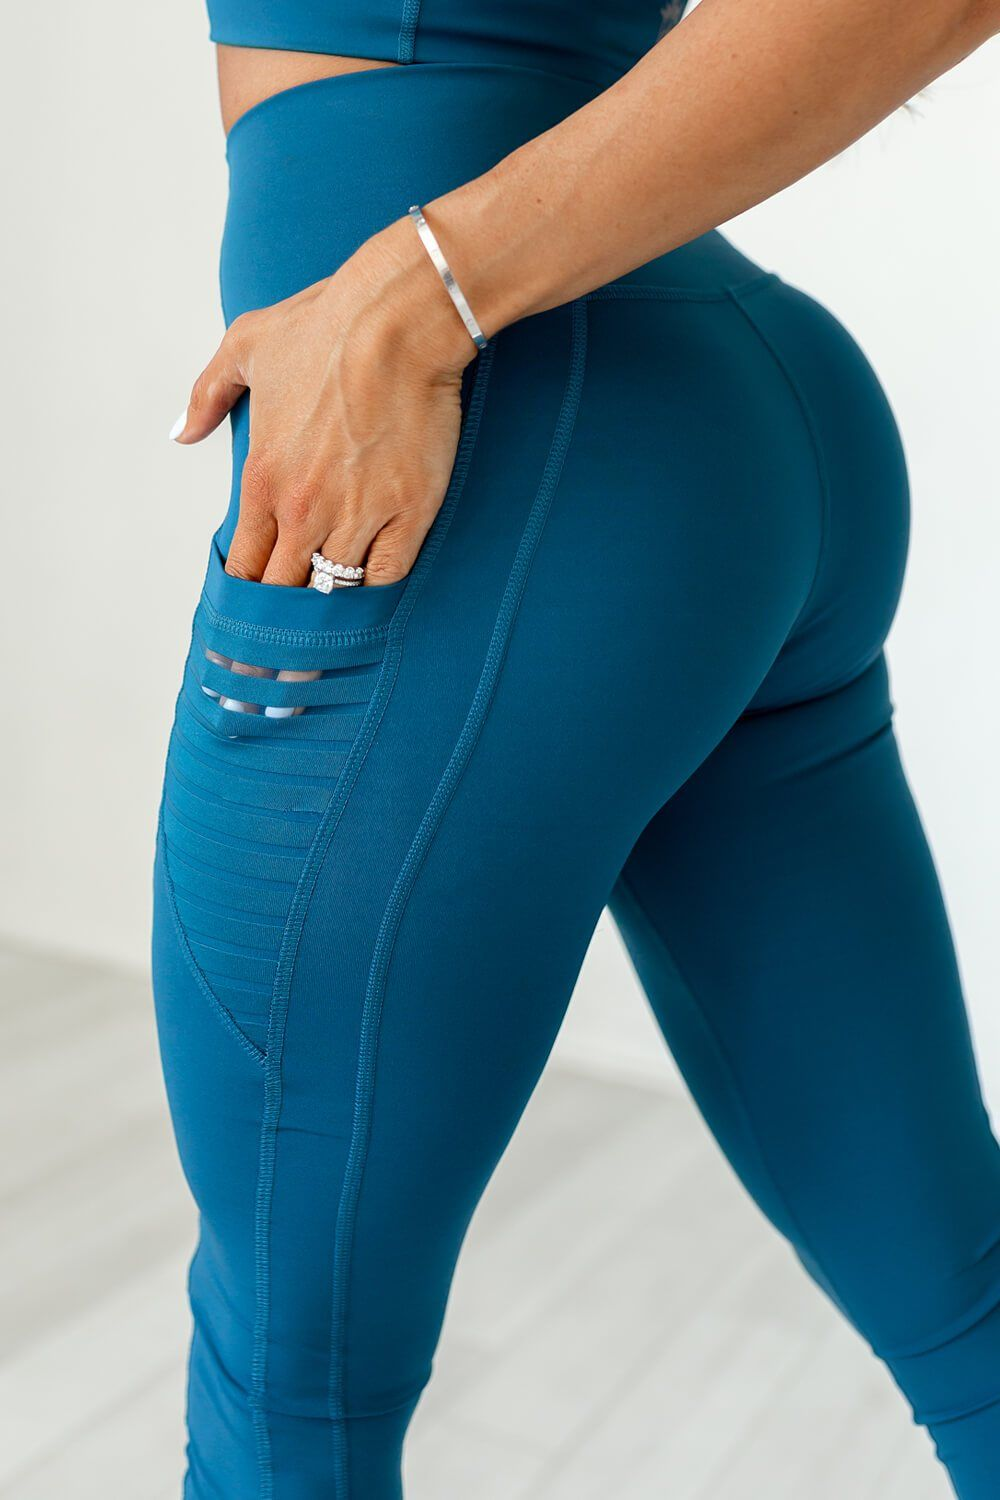 Yoga Pants Fitness Pants Yoga With Adriene Beginners P90X Legs And Back Workout Boxing Body Transformation Hot Women In Tight Yoga Pants